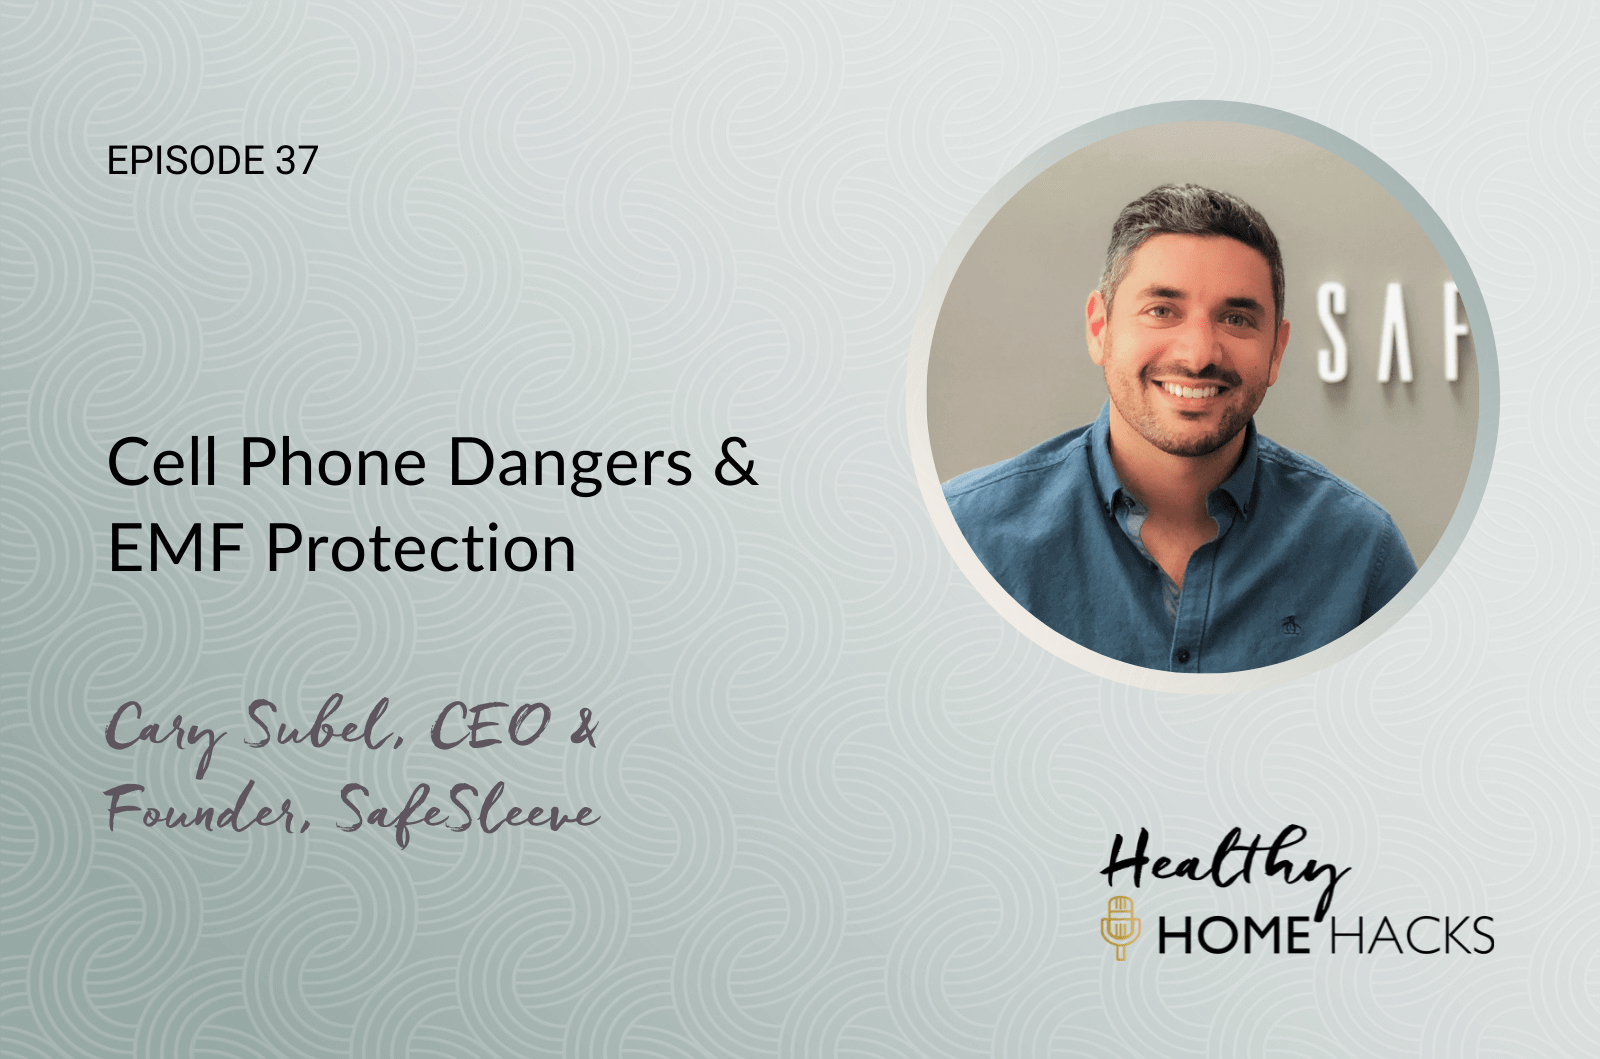 Cell Phone Dangers & EMF Protection